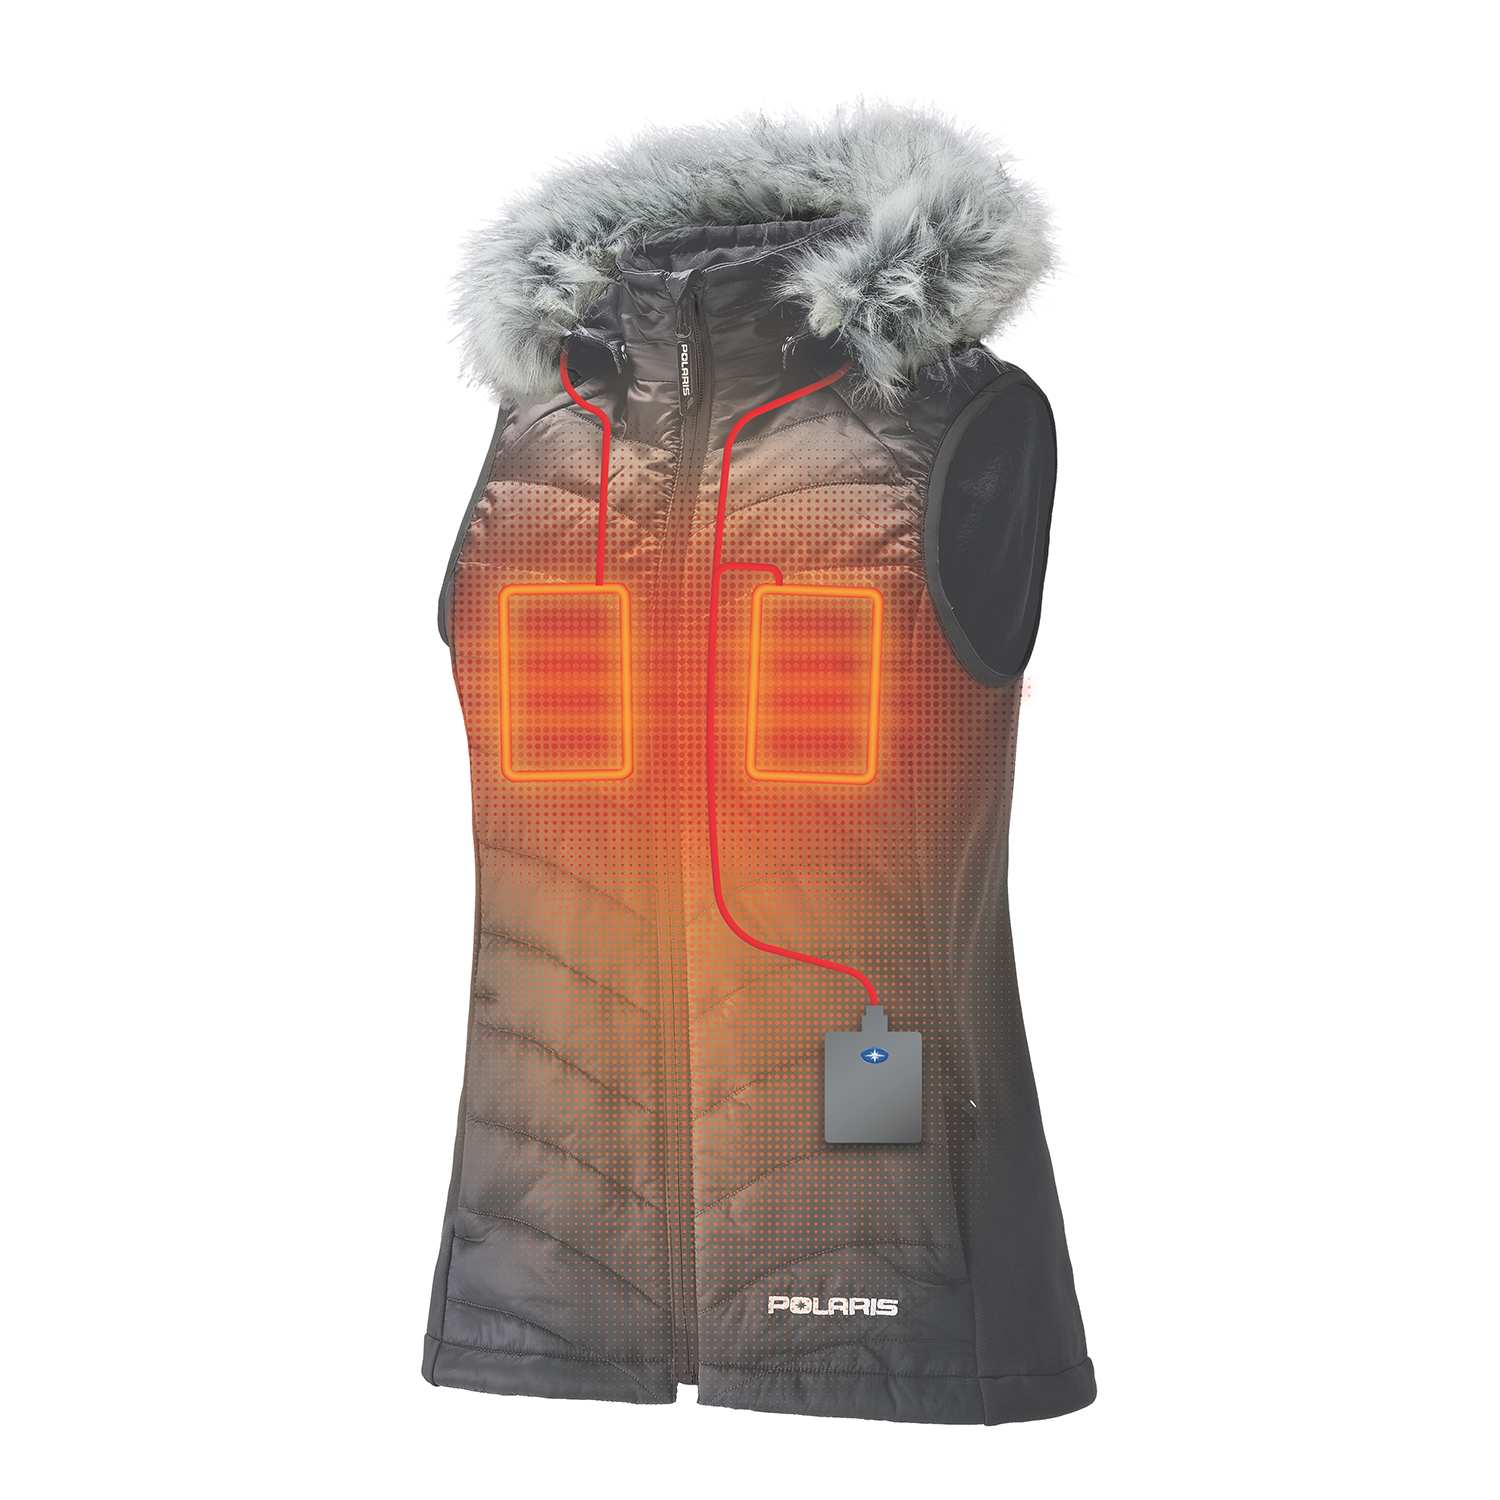 76aae758258d0 Women's Heated Vest with Rechargeable Battery, Dark Gray | Polaris RZR